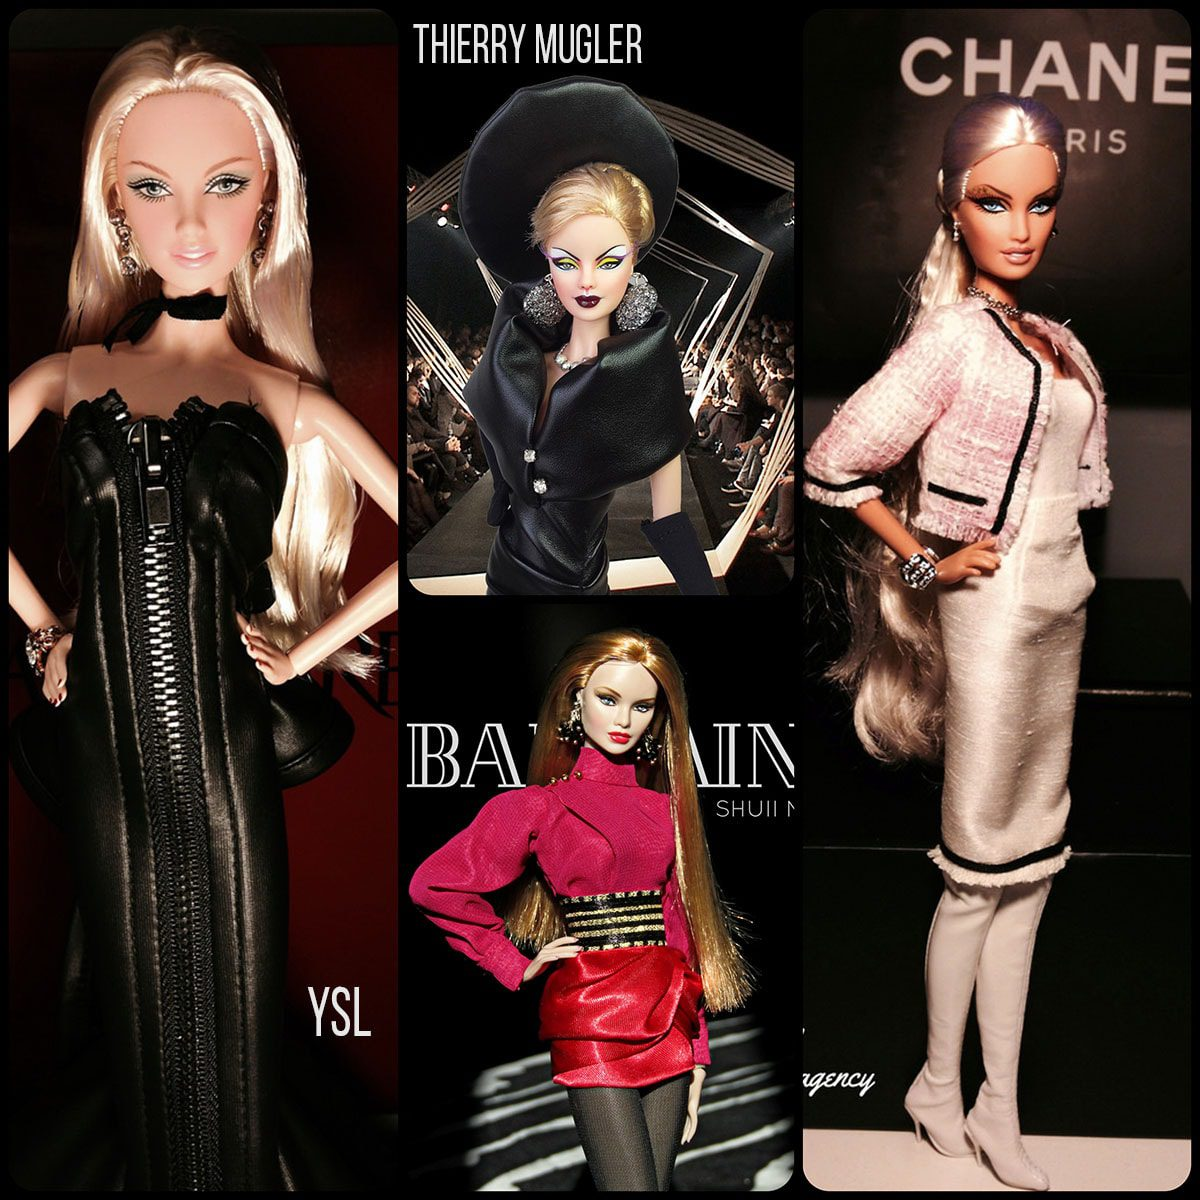 Barbie by Thierry Mugler, Chanel, Balmain and YSL by Runway Magazine